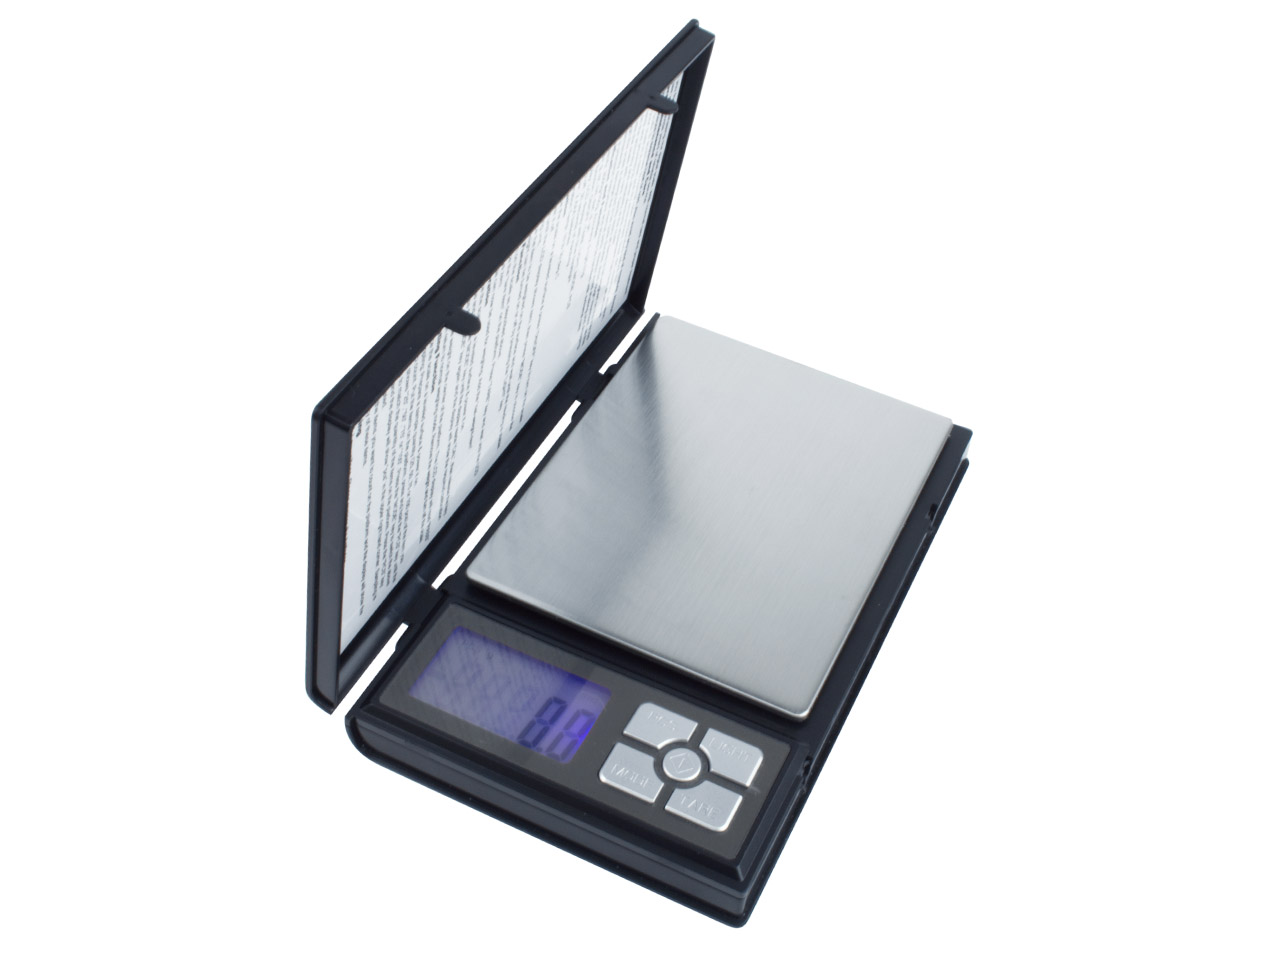 On Balance Nbs-2000 Notebook Scale